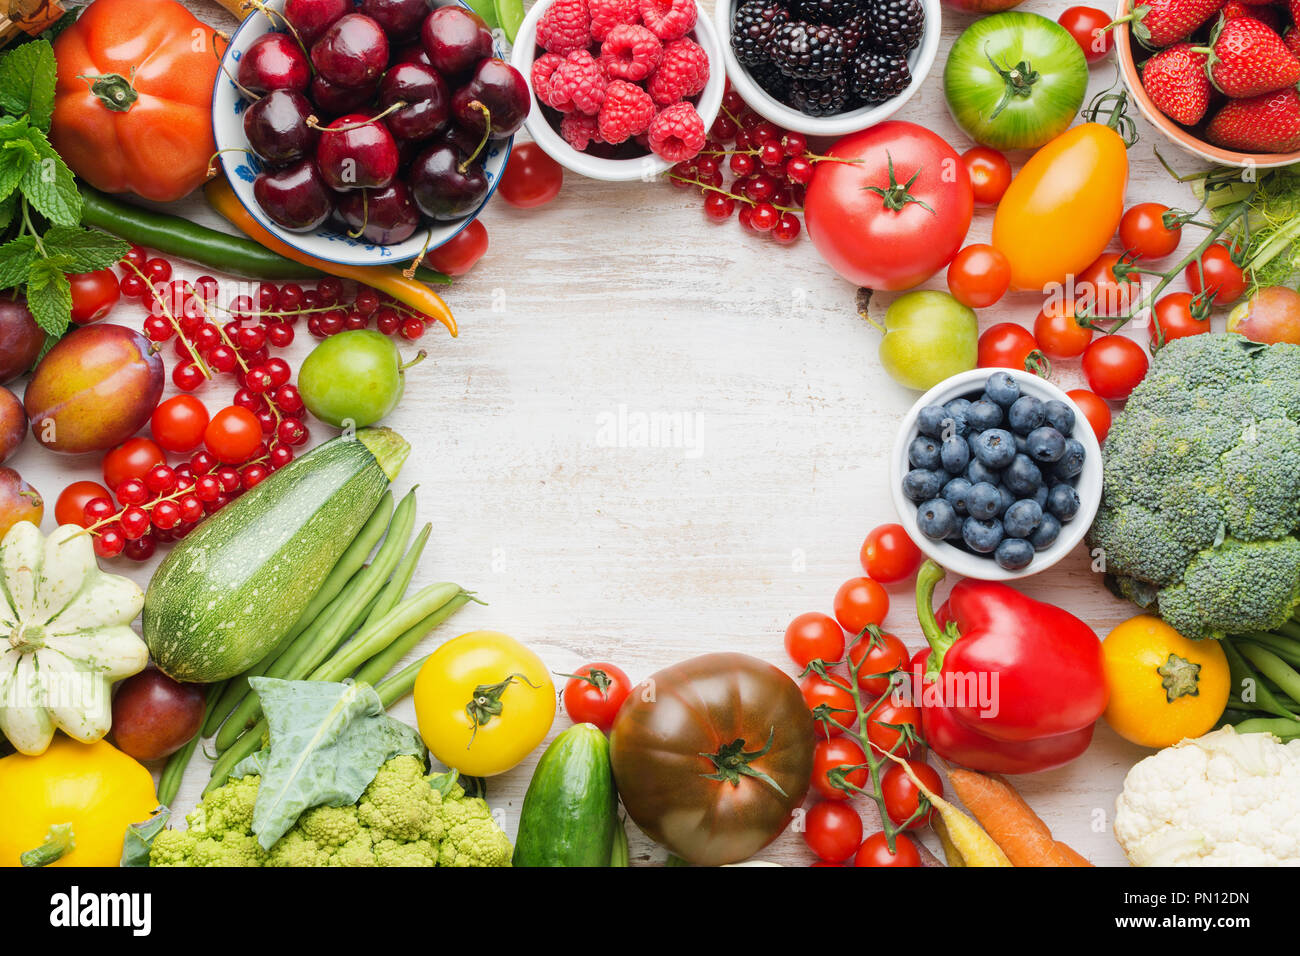 Superbe Healthy Summer Fruits Vegetables Berries Arranged In A Circle Frame,  Cherries Peaches Strawberries Cabbage Broccoli Cauliflower Squash Tomatoes  Carrot